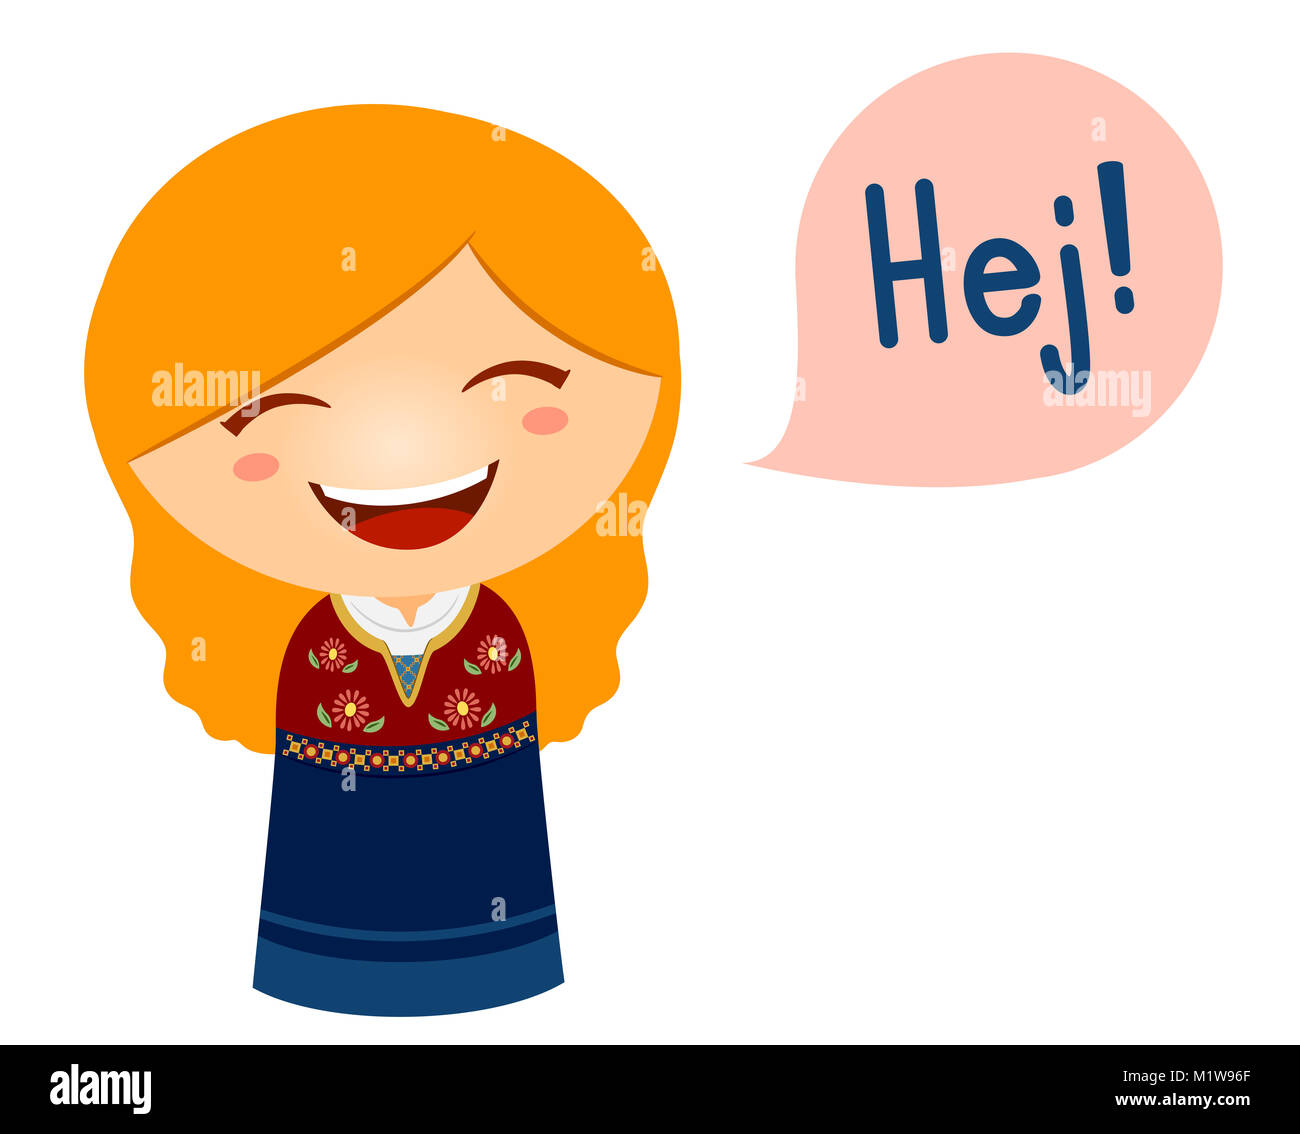 cute illustration of a little girl in a danish costume saying hello